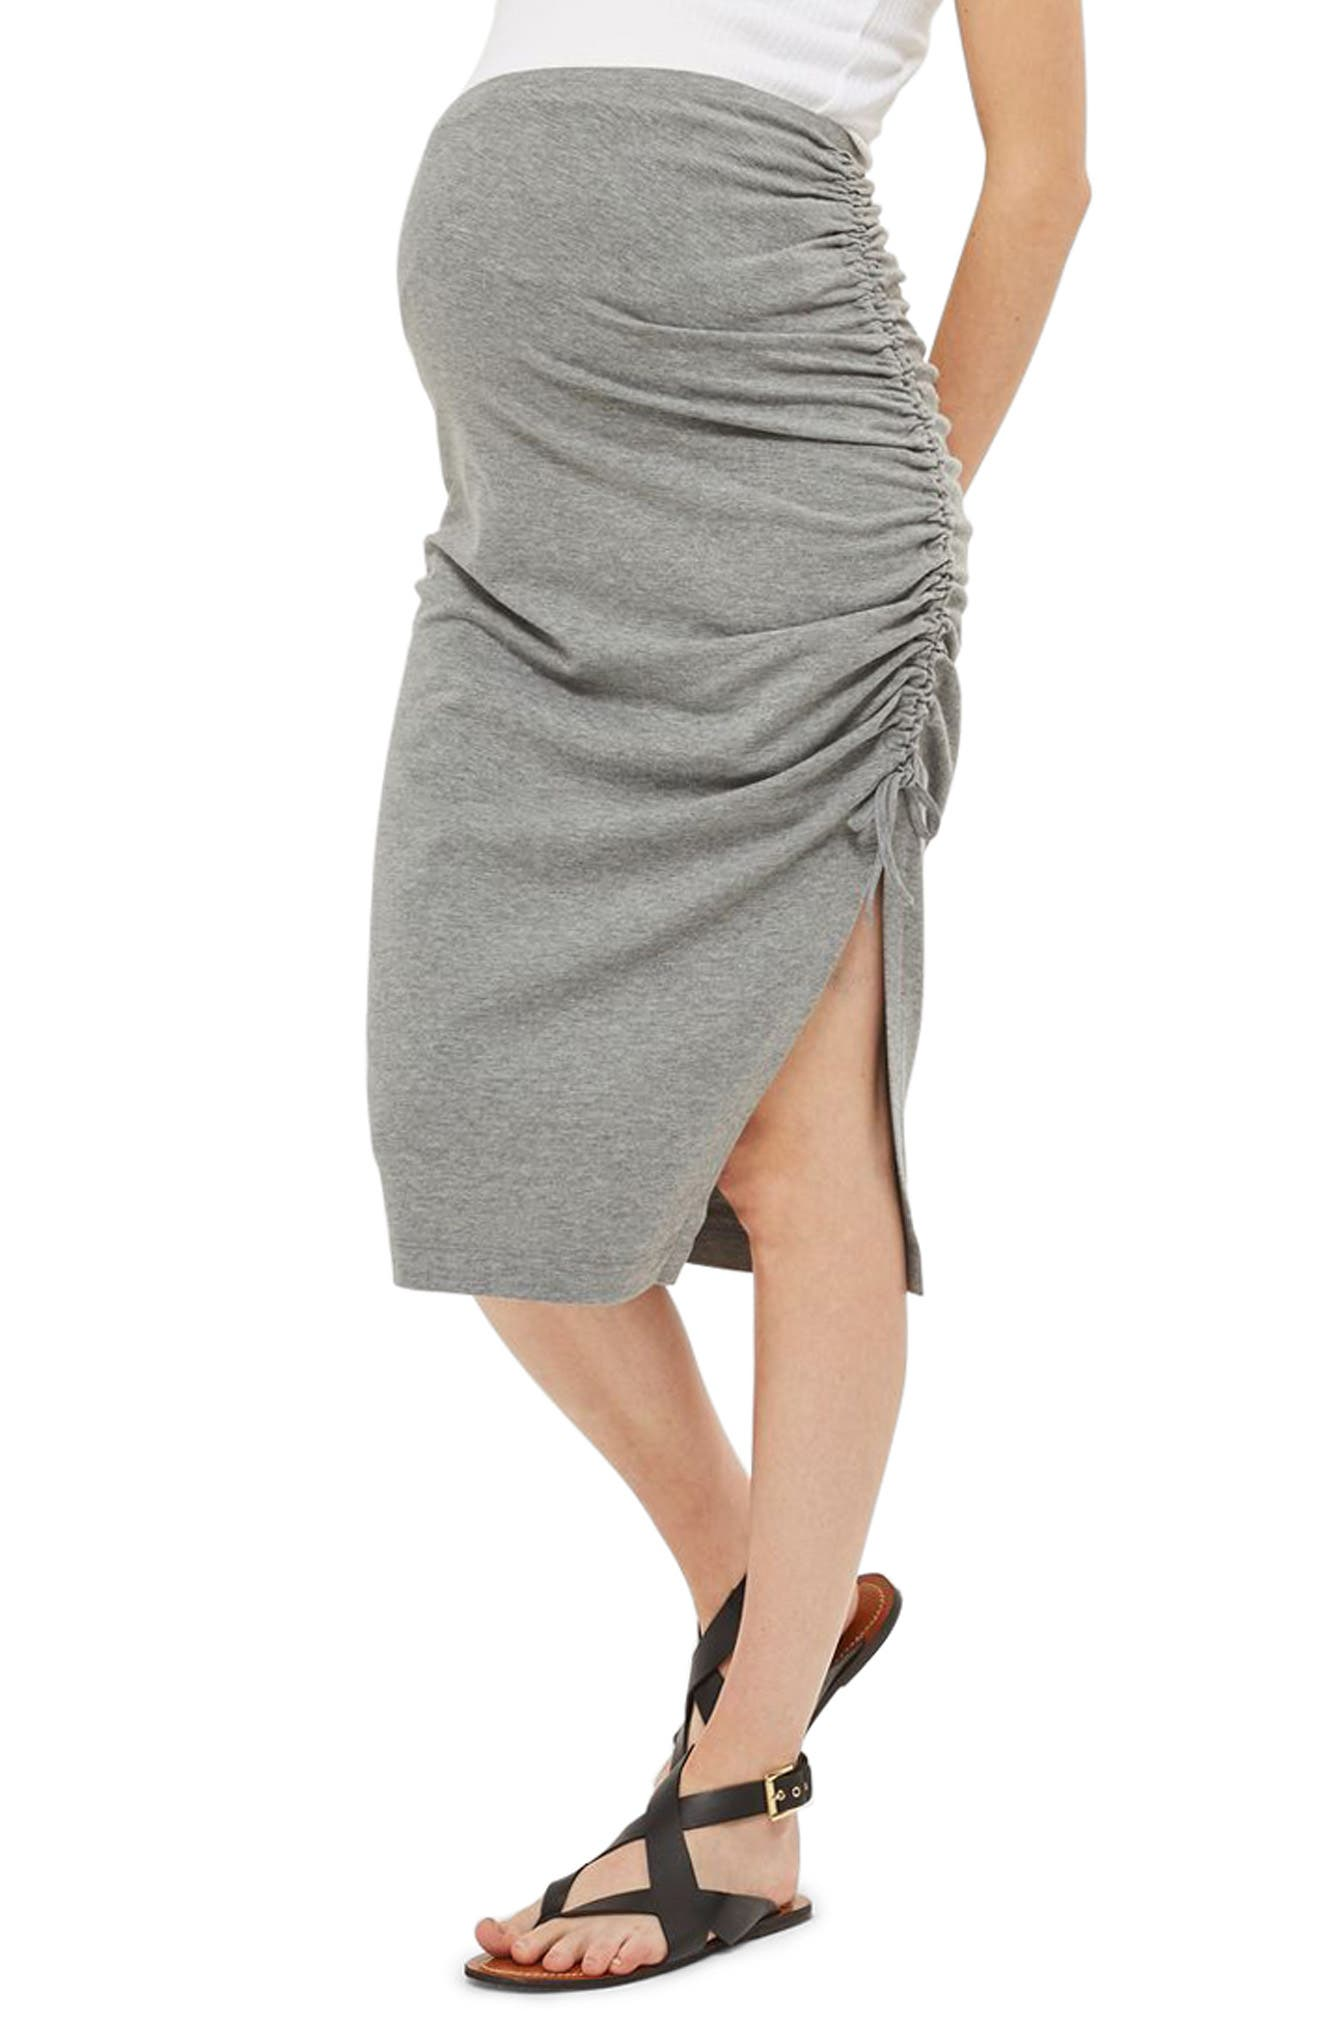 Topshop Ruched Maternity Pencil Skirt